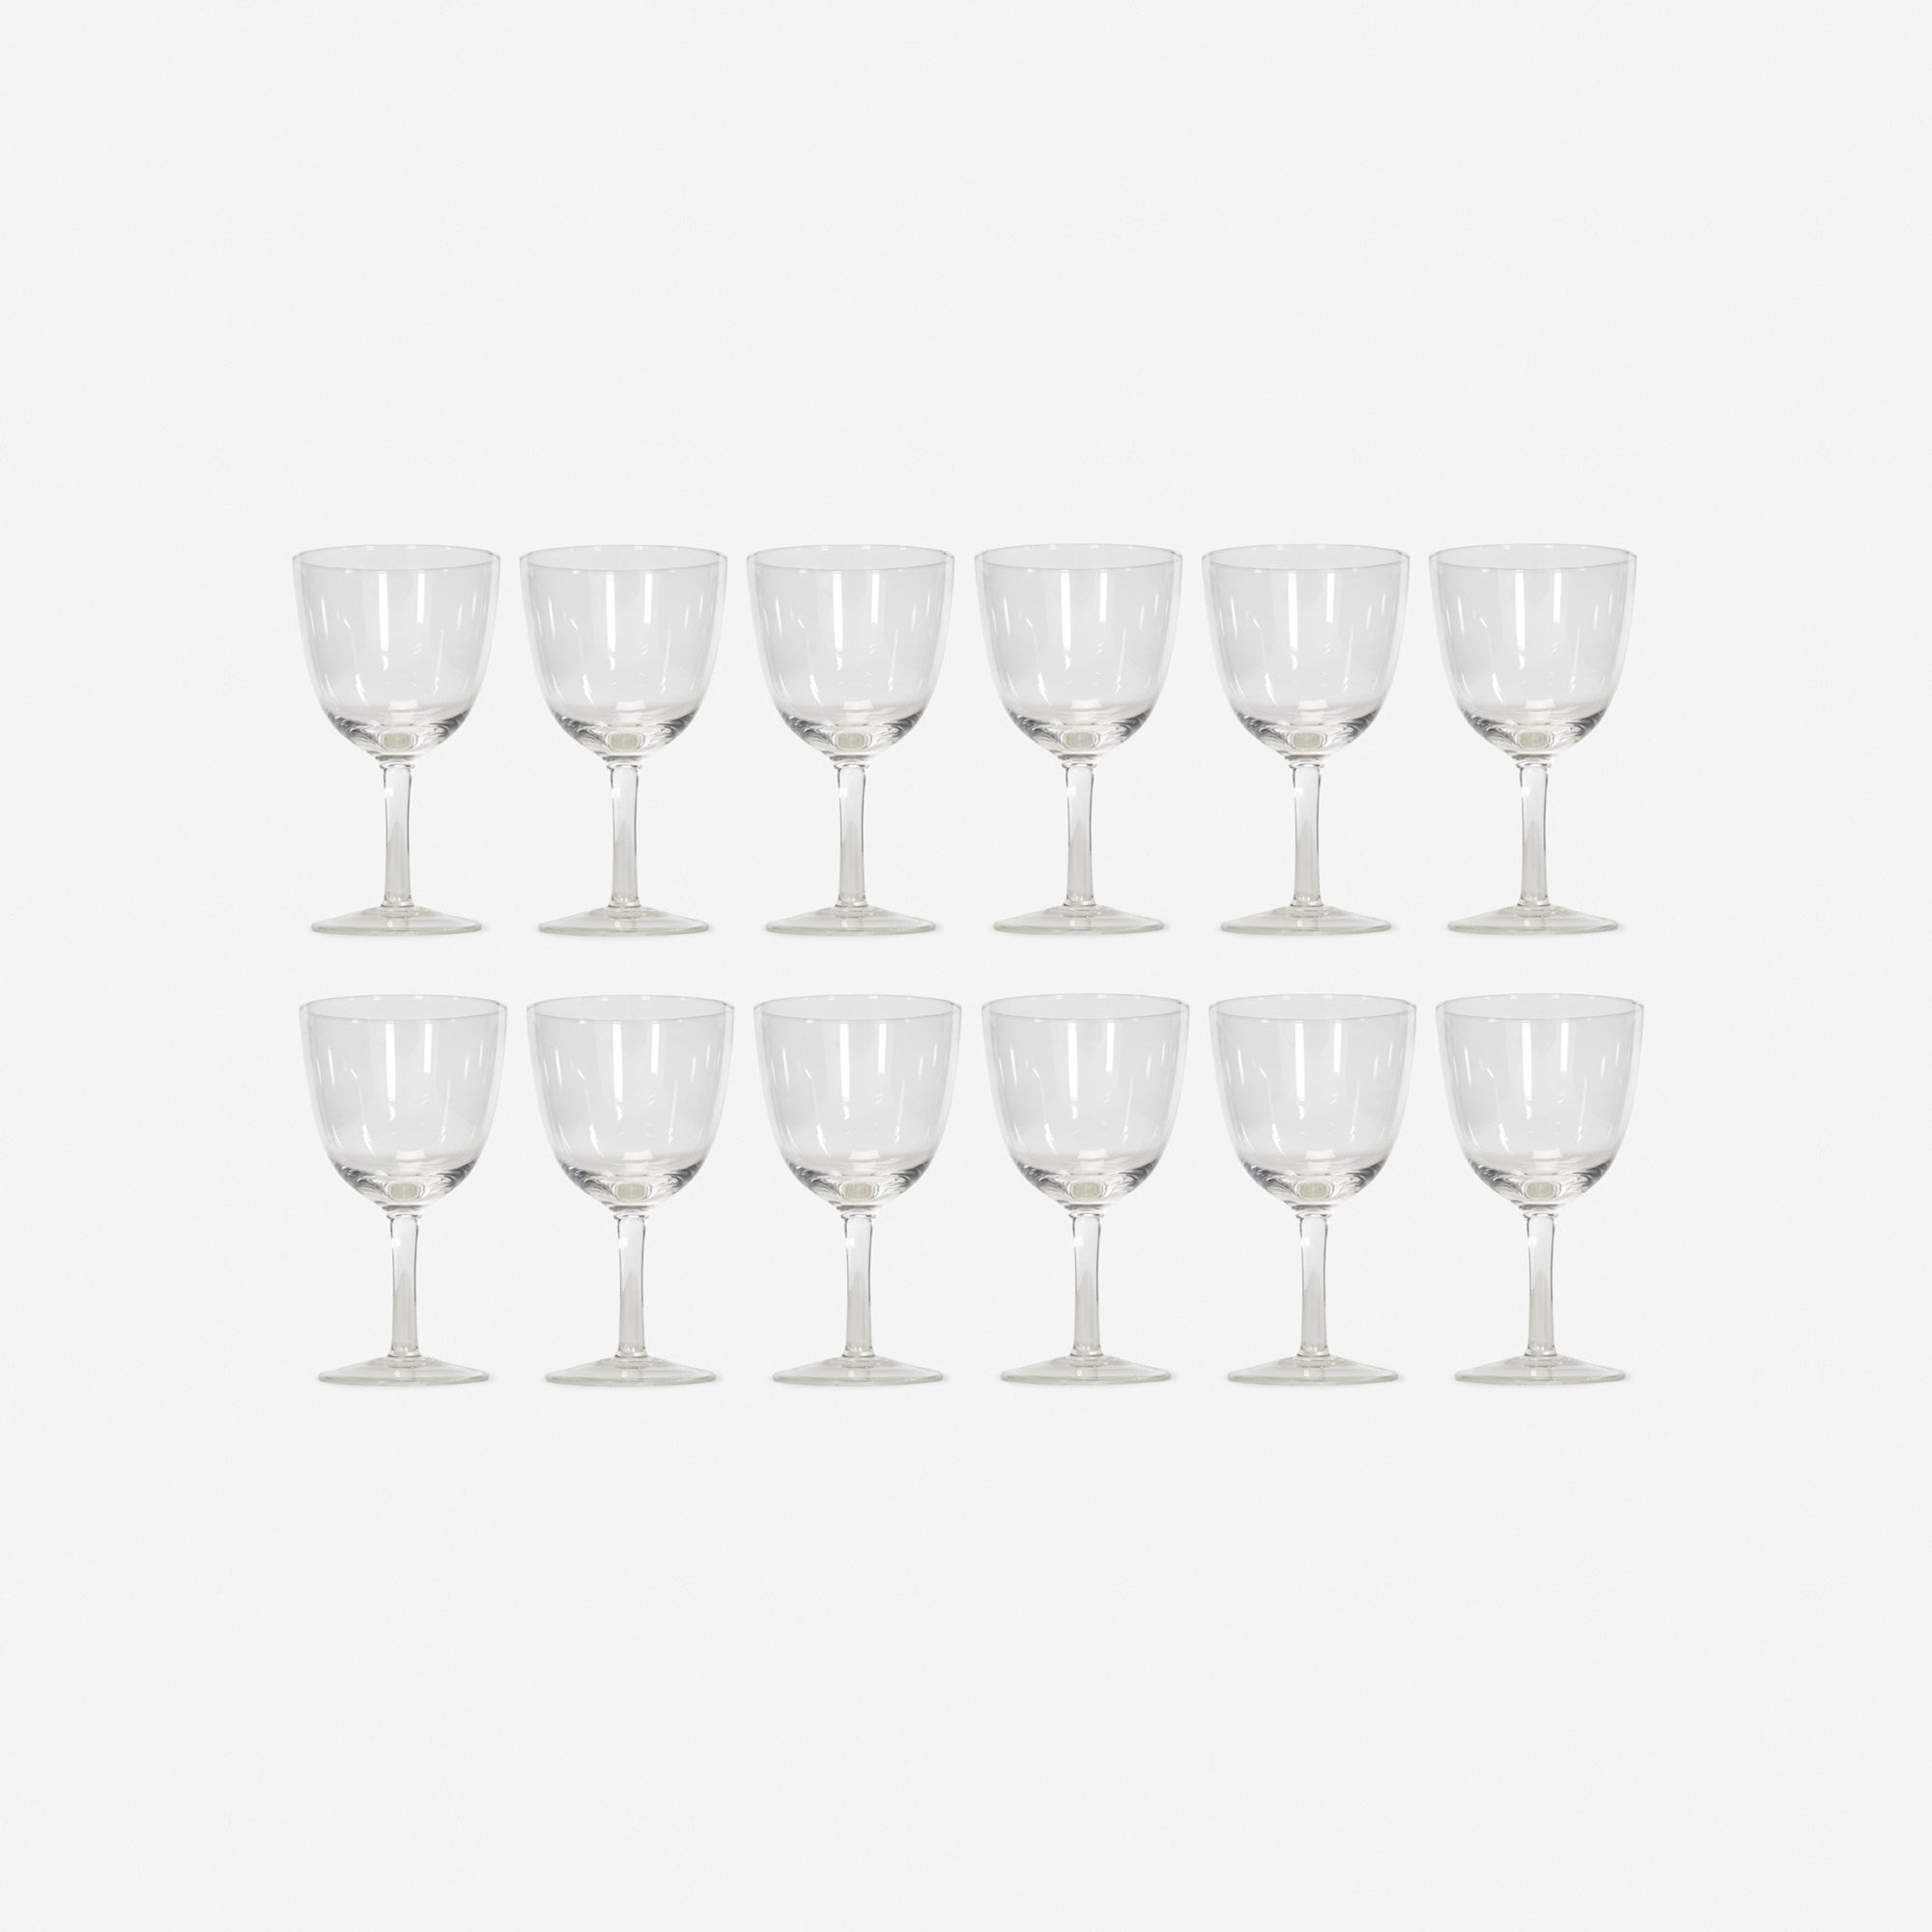 445: Garth and Ada Louise Huxtable / Water glasses from The Four Seasons, set of twelve (1 of 1)